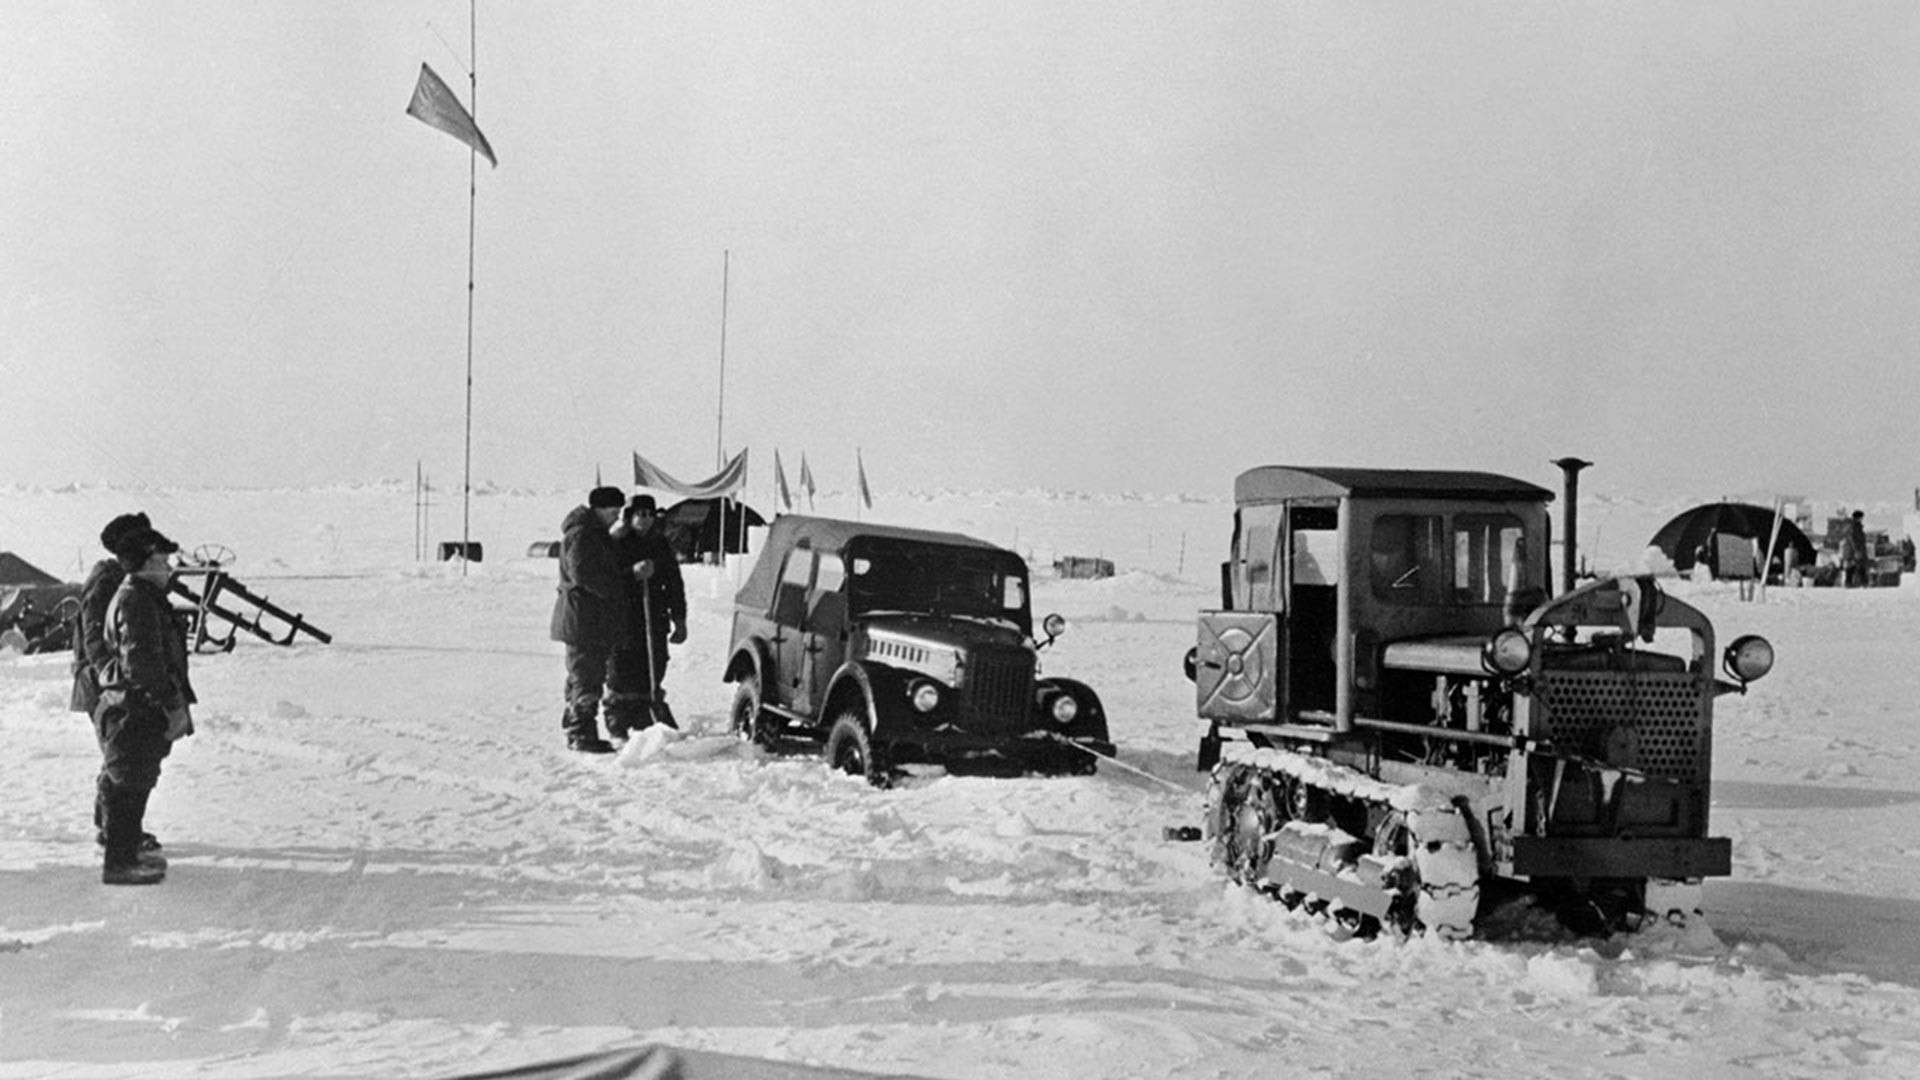 Tractor rescues disabled auto at one of the observation stations set up by Soviet Union scientists atop an ice floe in the Arctic region.